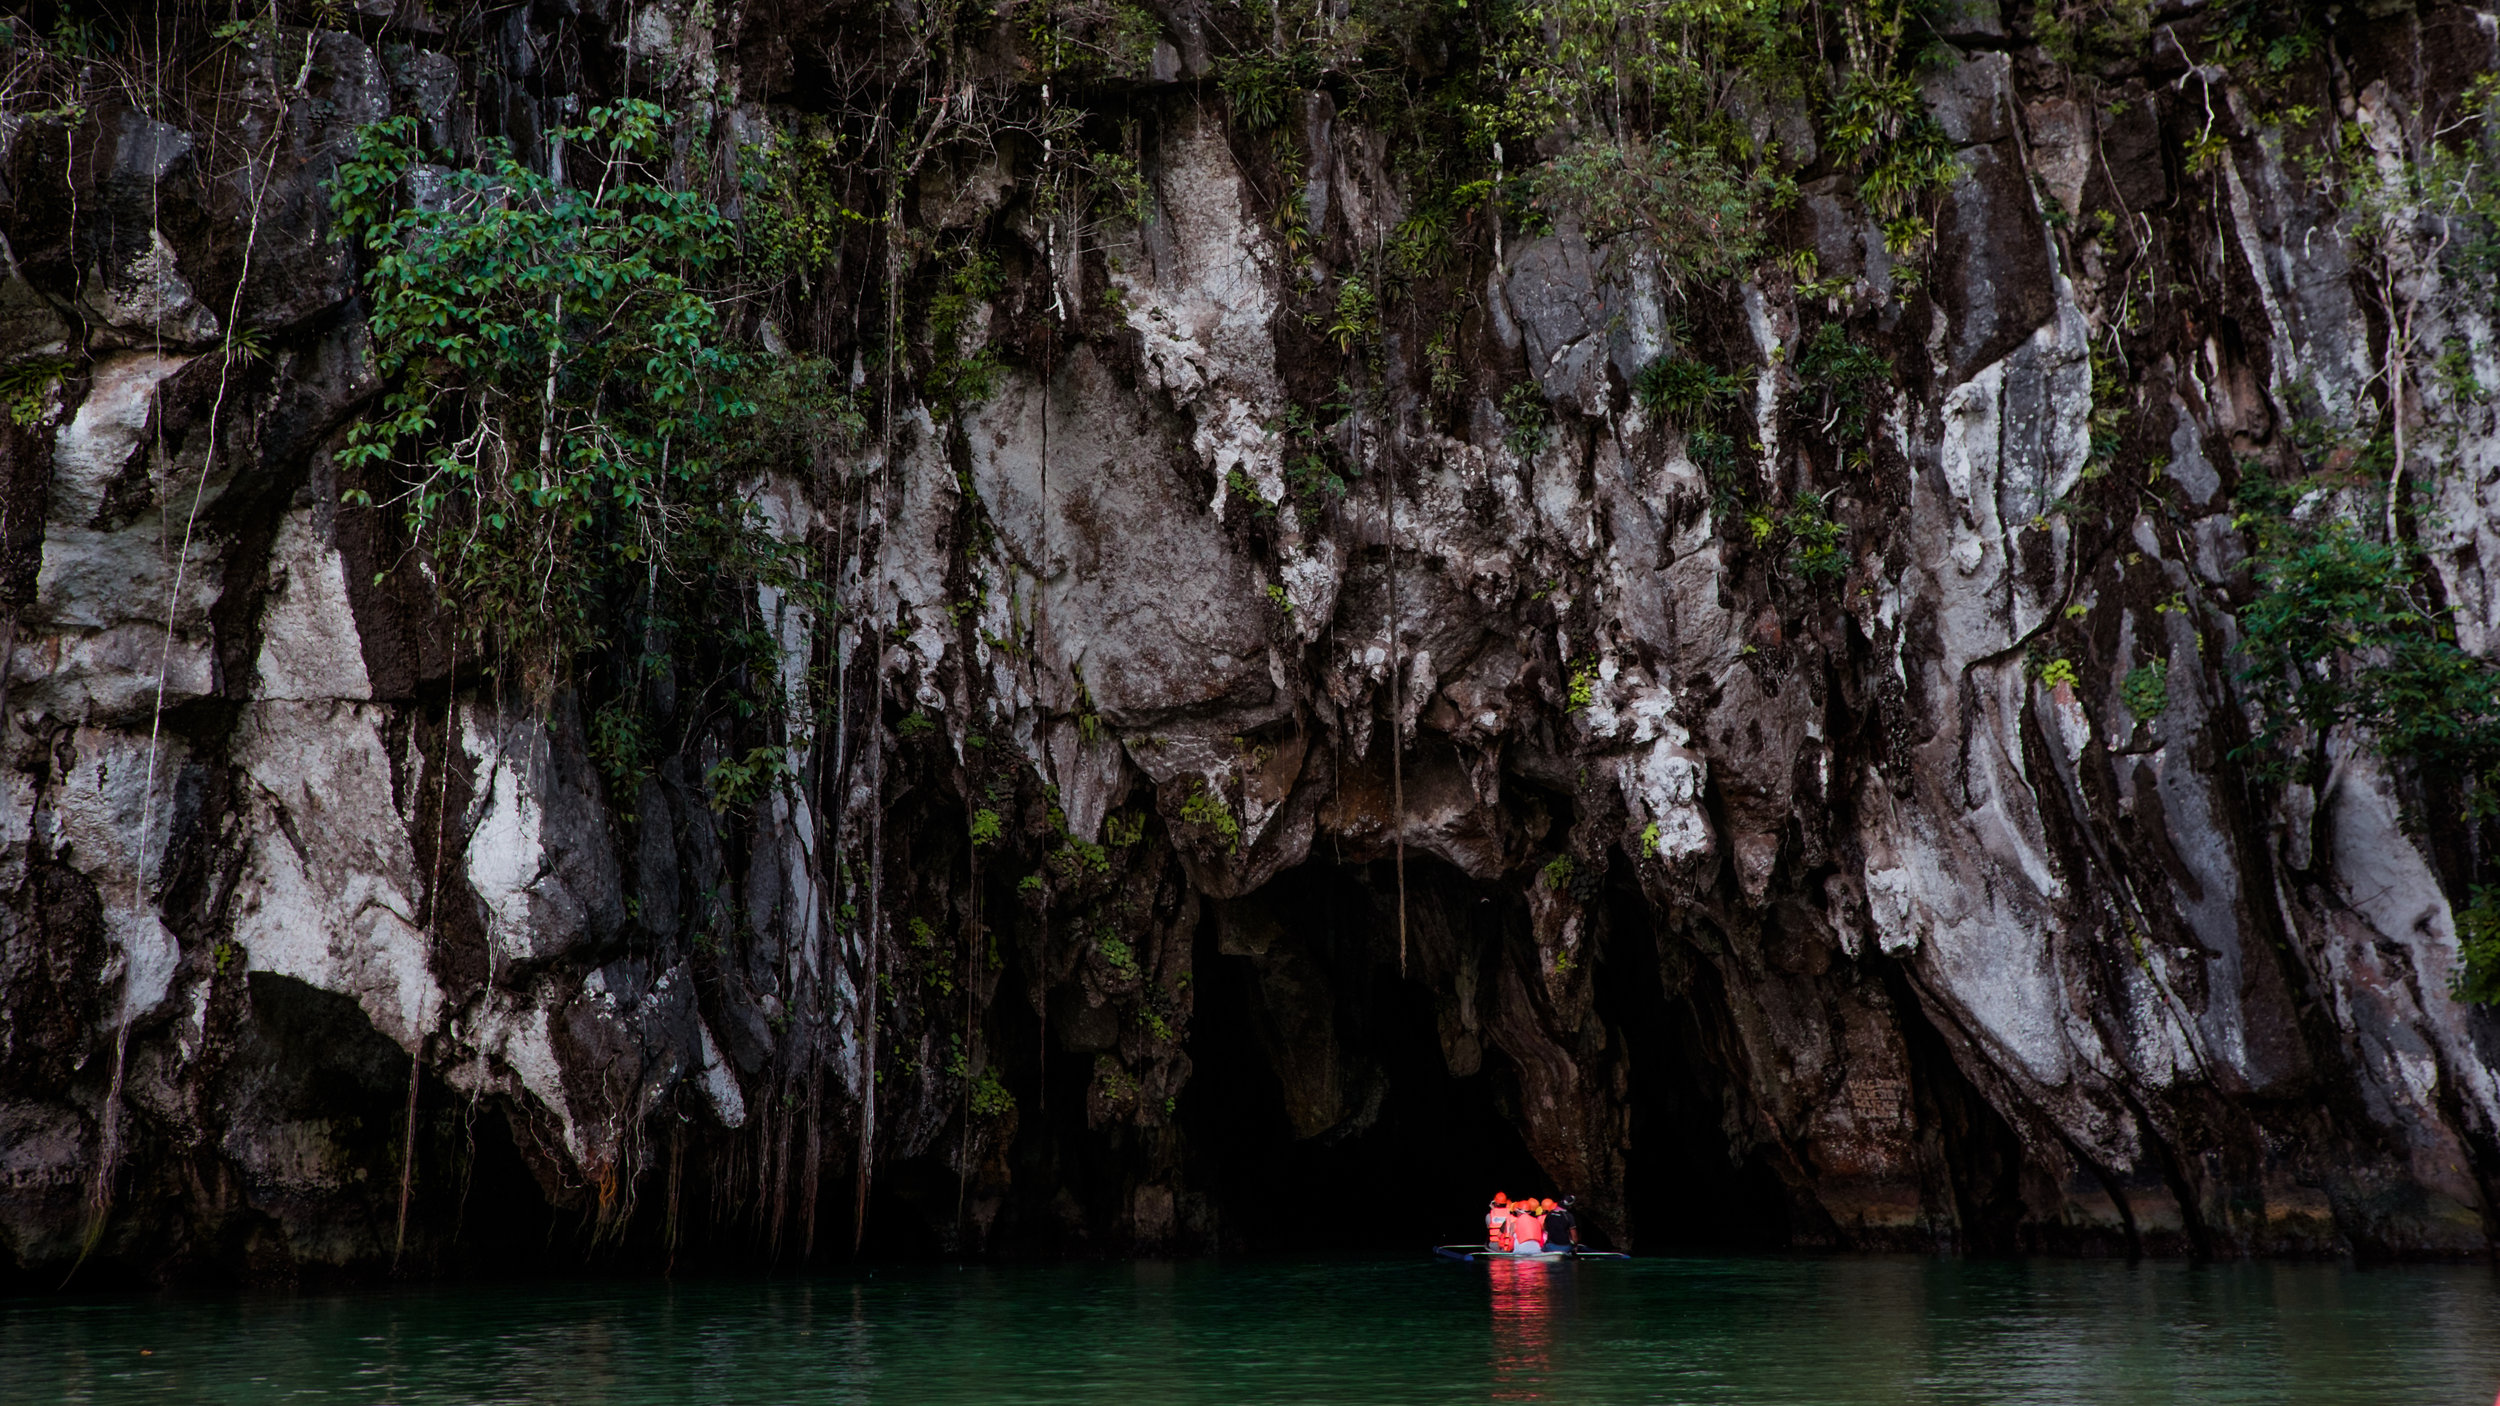 Entrance to the Underground River.